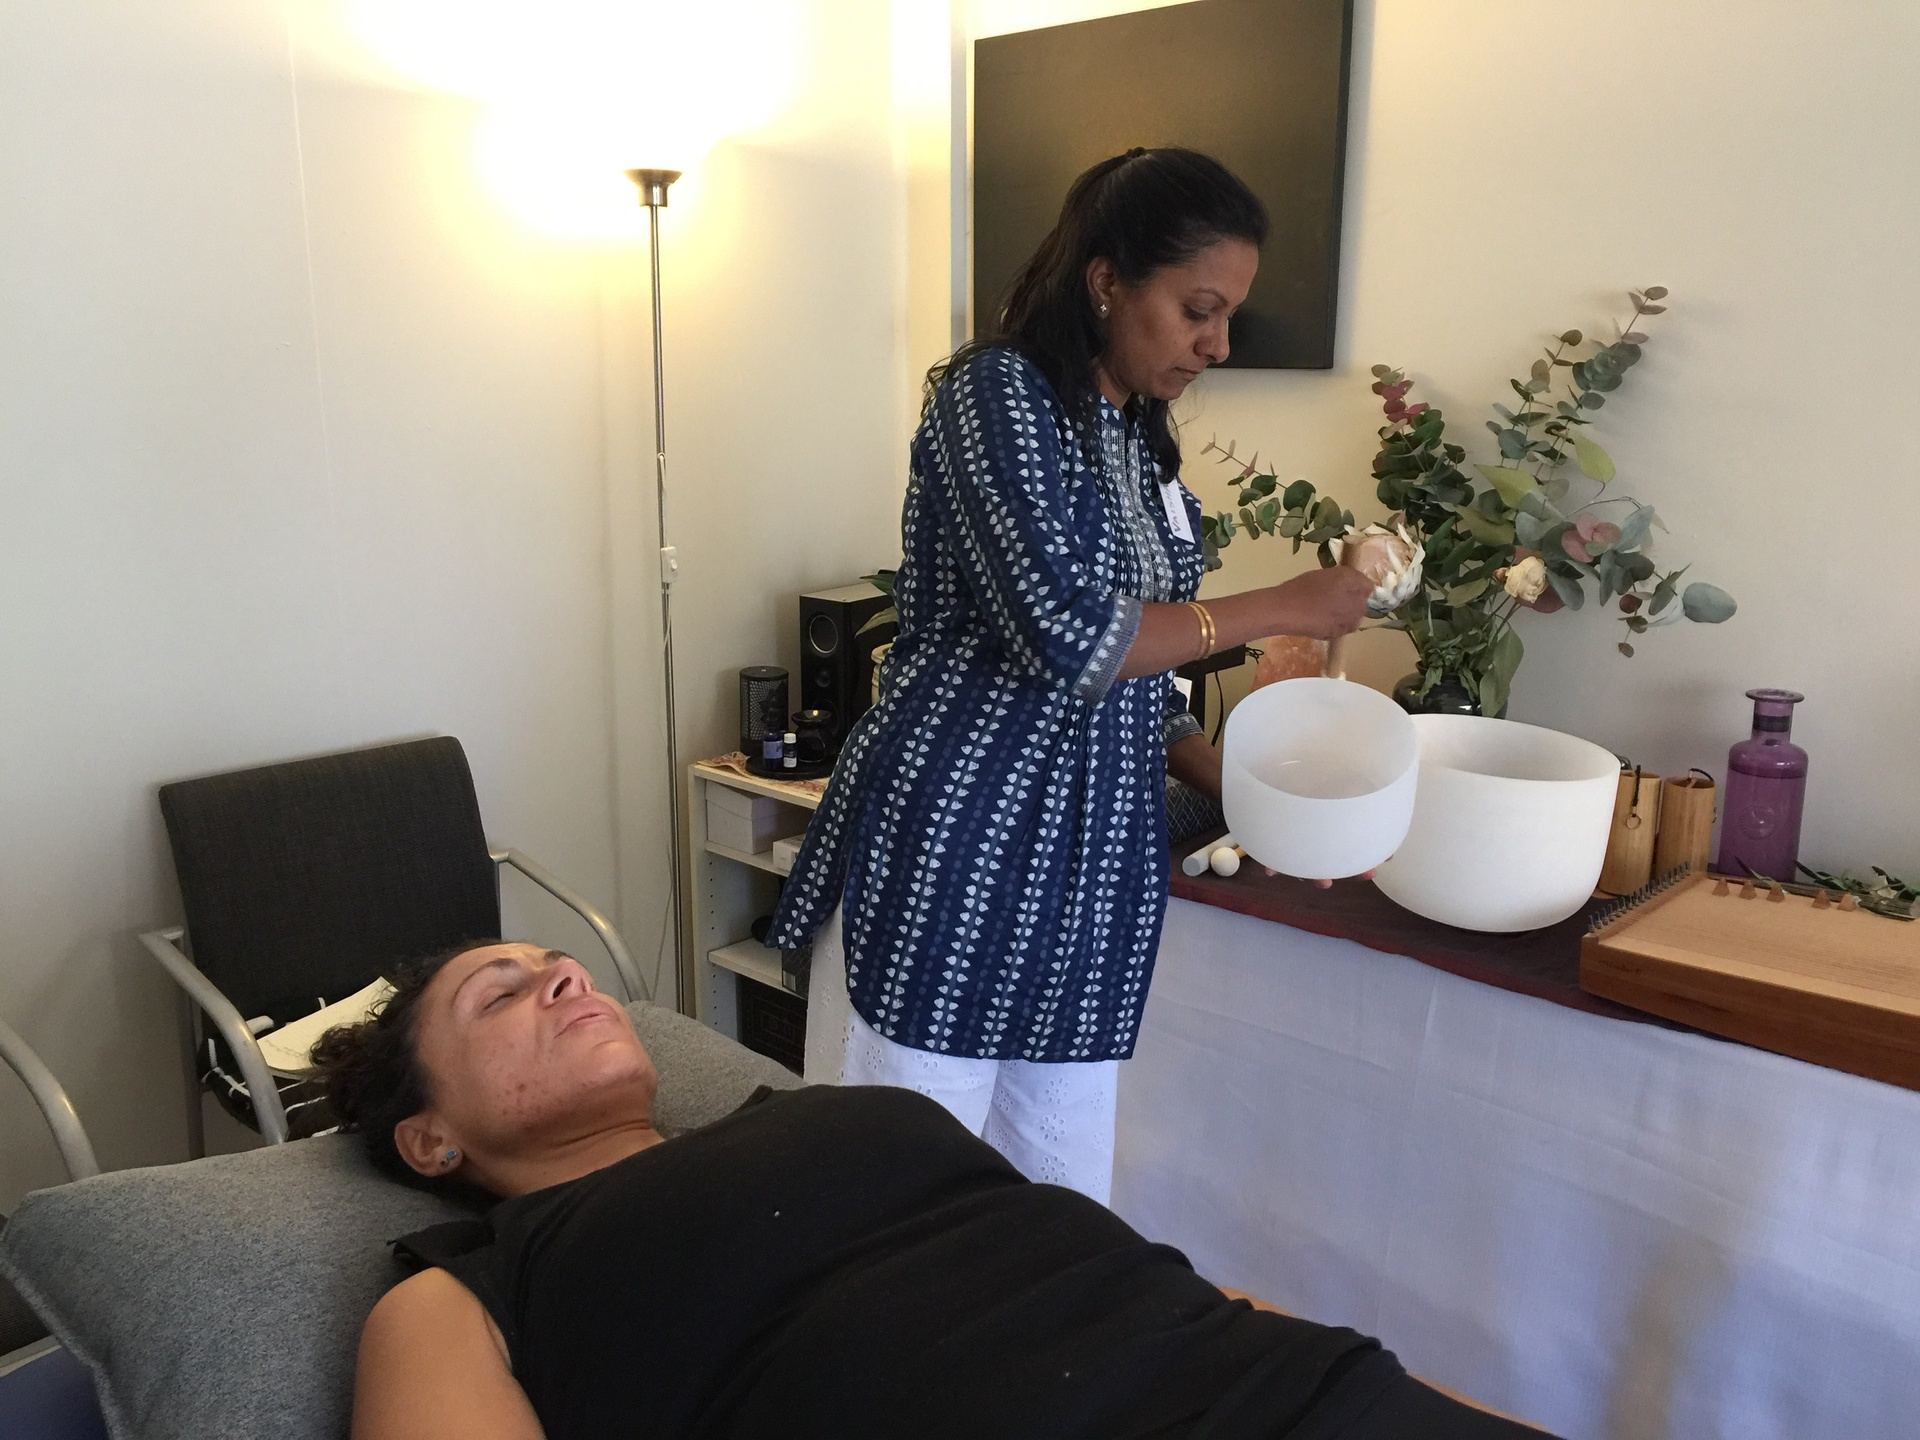 Mount Waverley, Victoria Sound Therapy